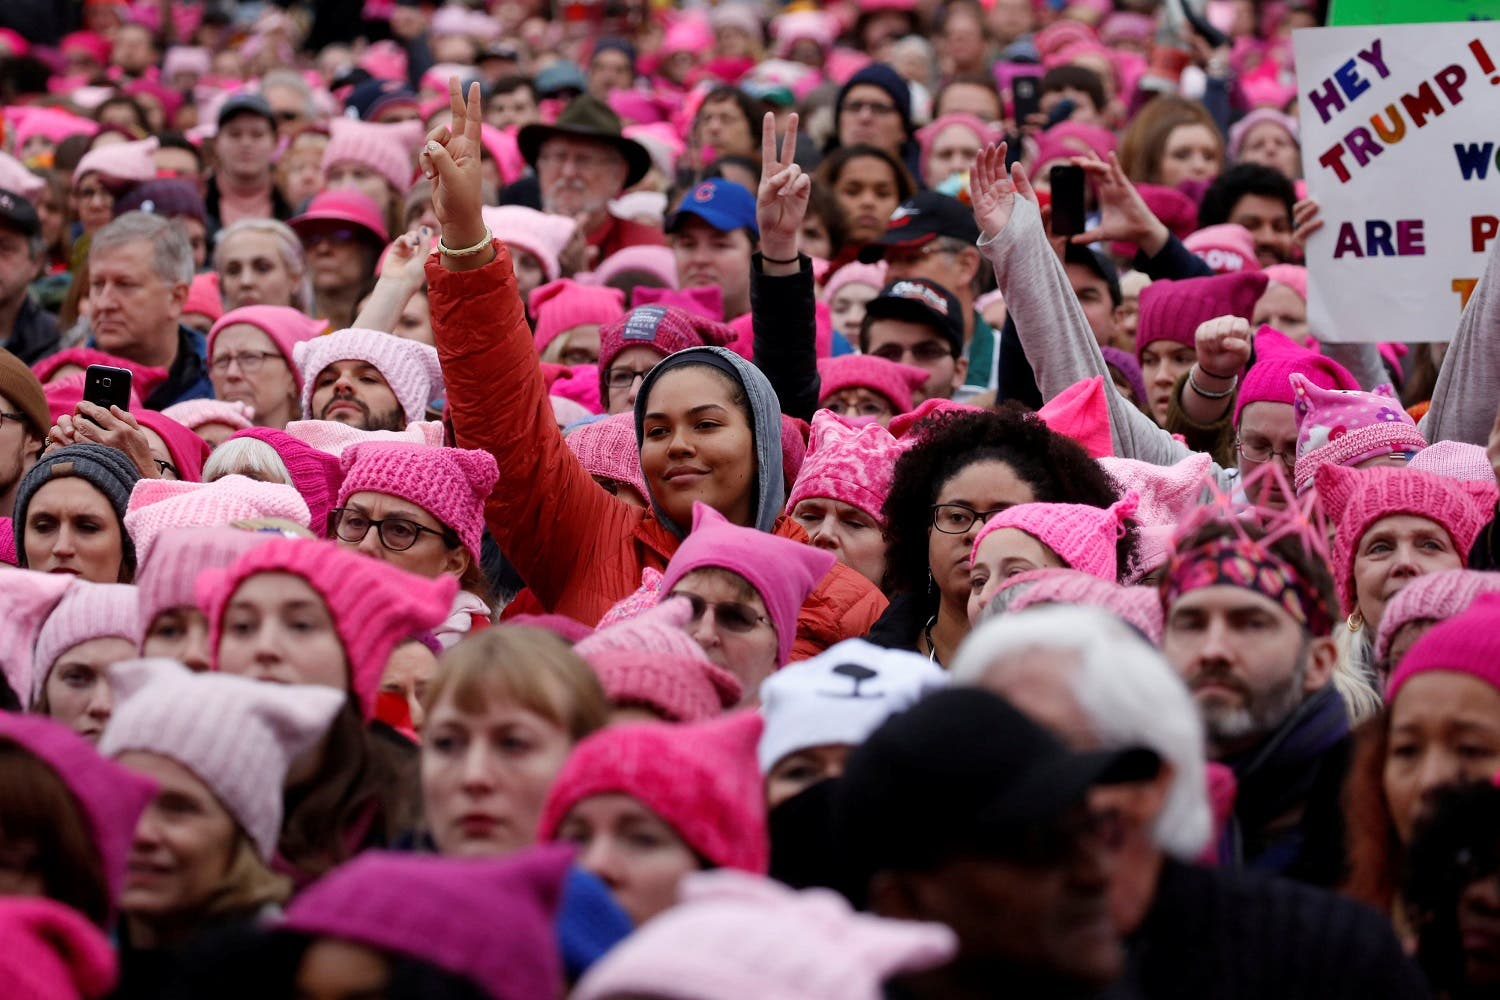 People gather for the Women's March in Washington US, January 21, 2017, the march was in protest of Trump presidency (Photo: Reuters/Shannon Stapleton)